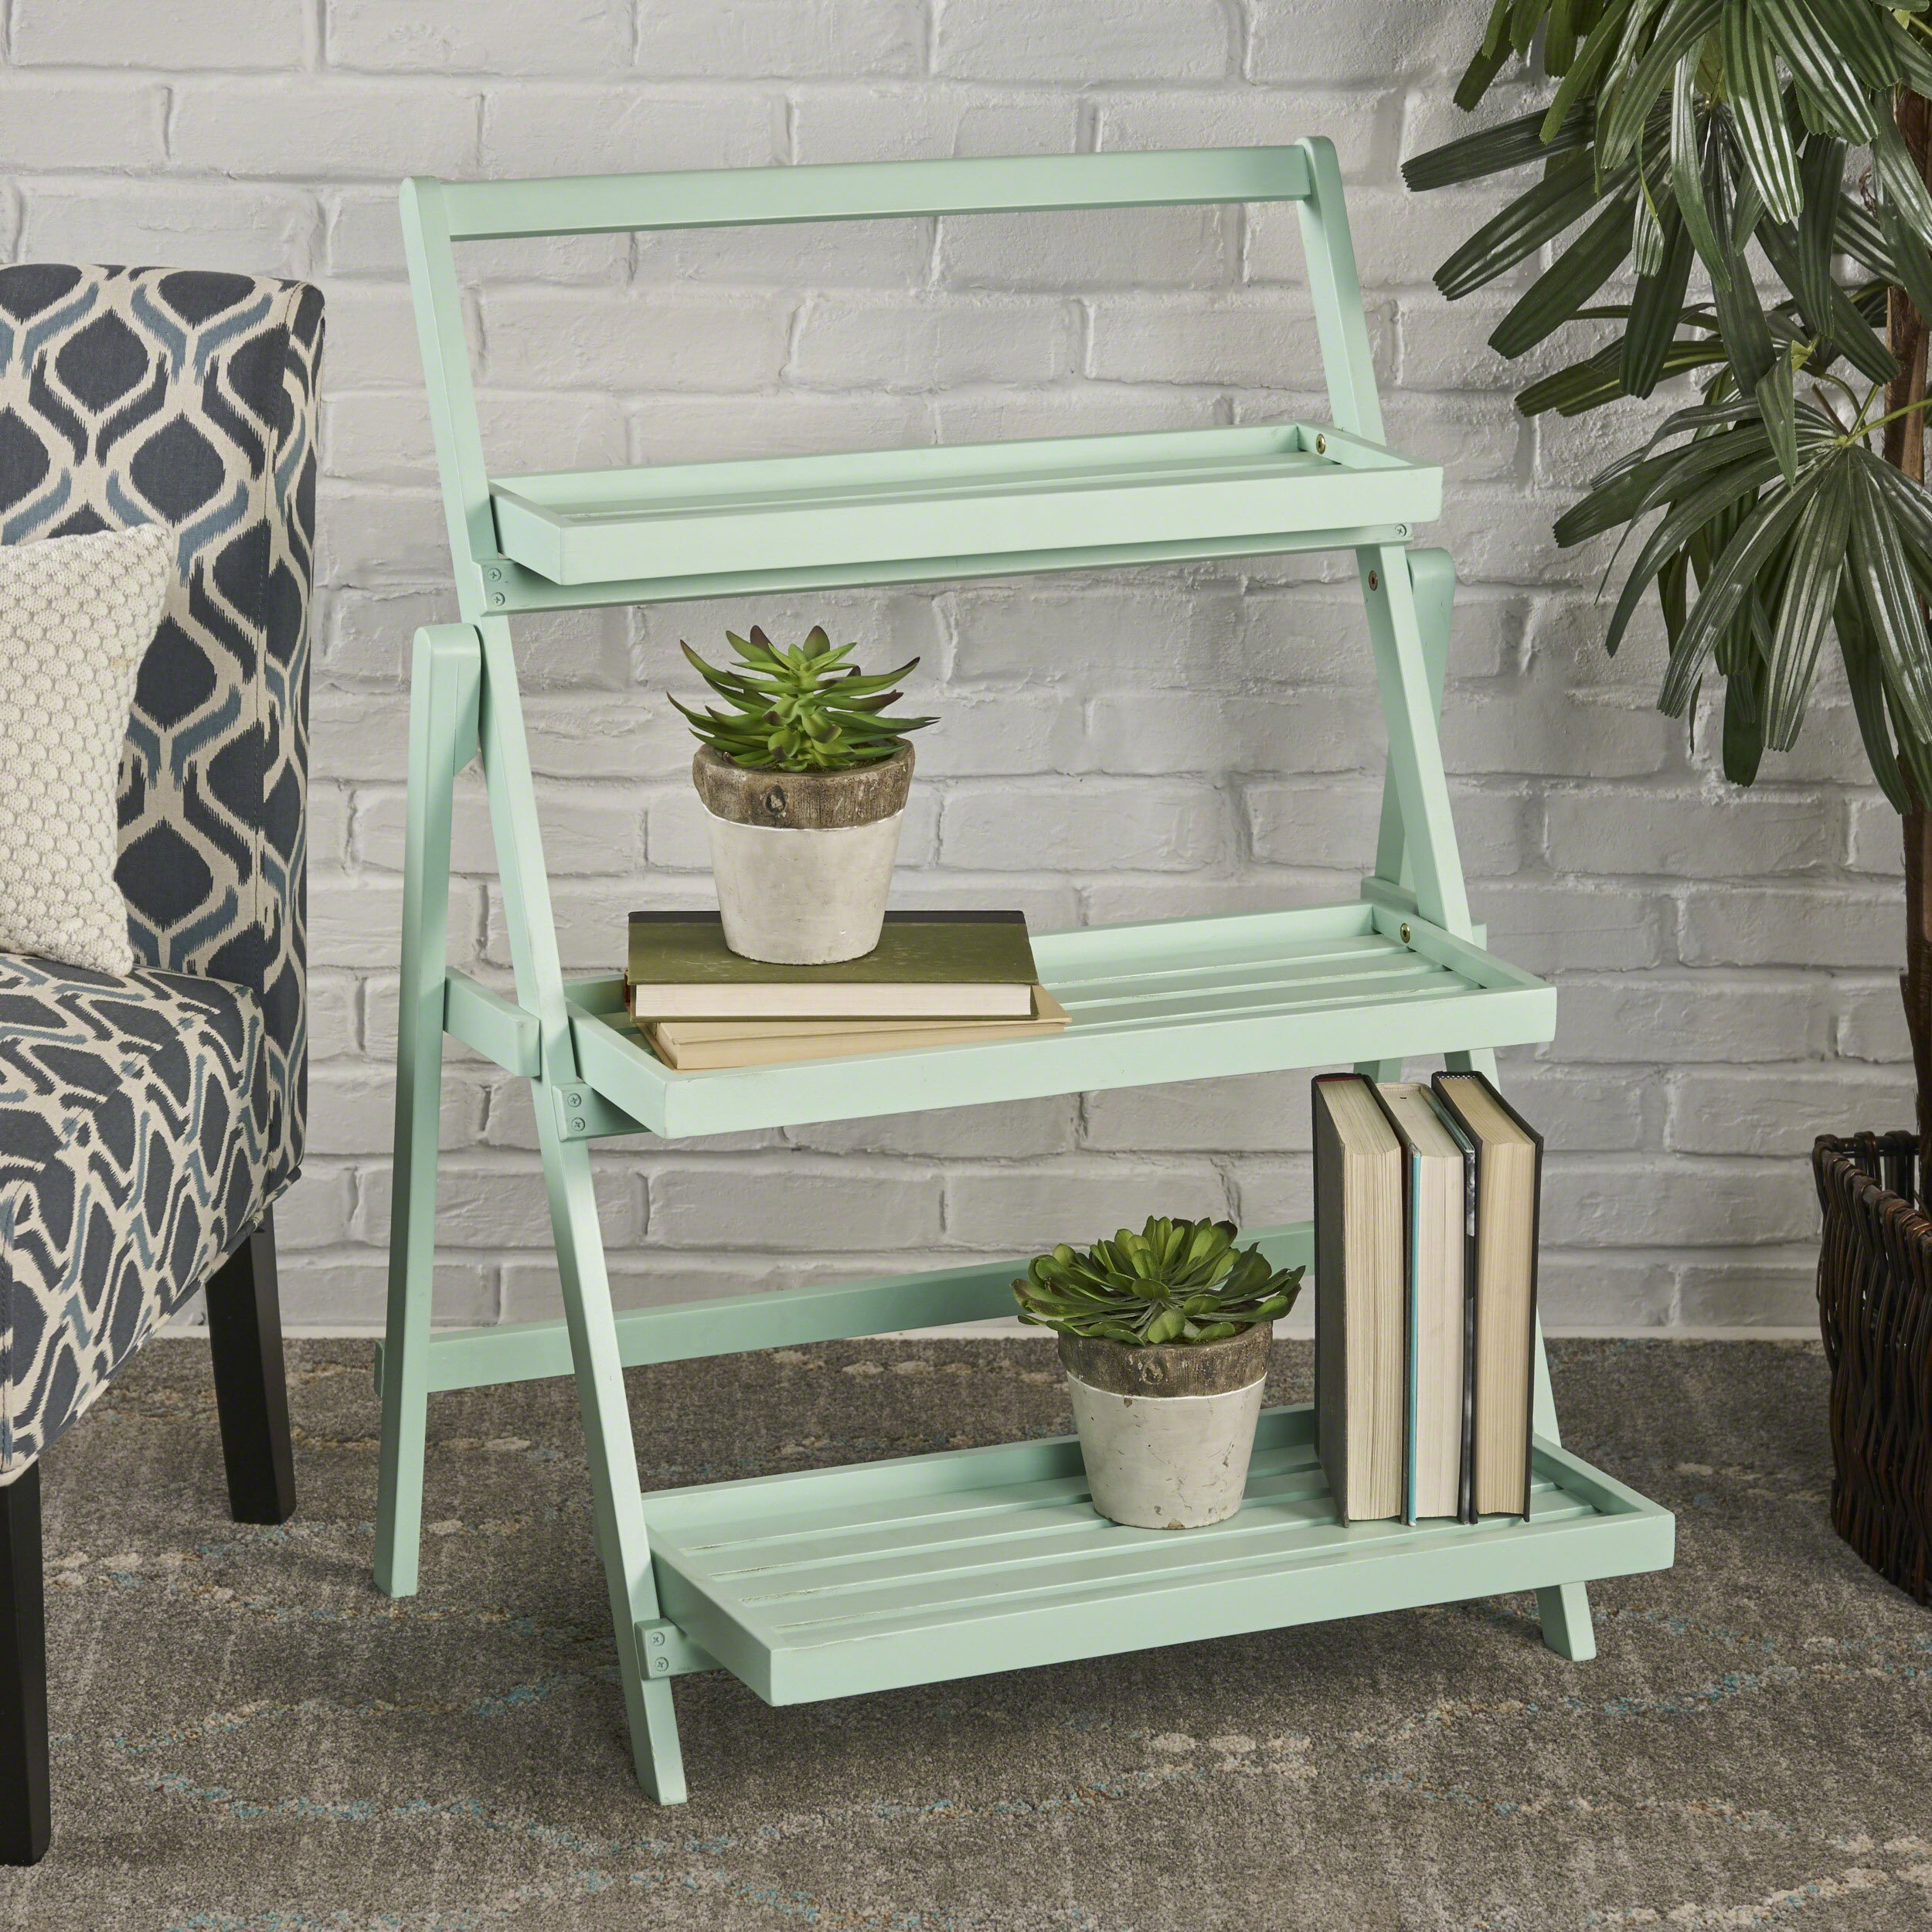 Christopher Knight Home 302583 Cletus Indoor Chic Acacia Wood Plant Stand, Light Mint